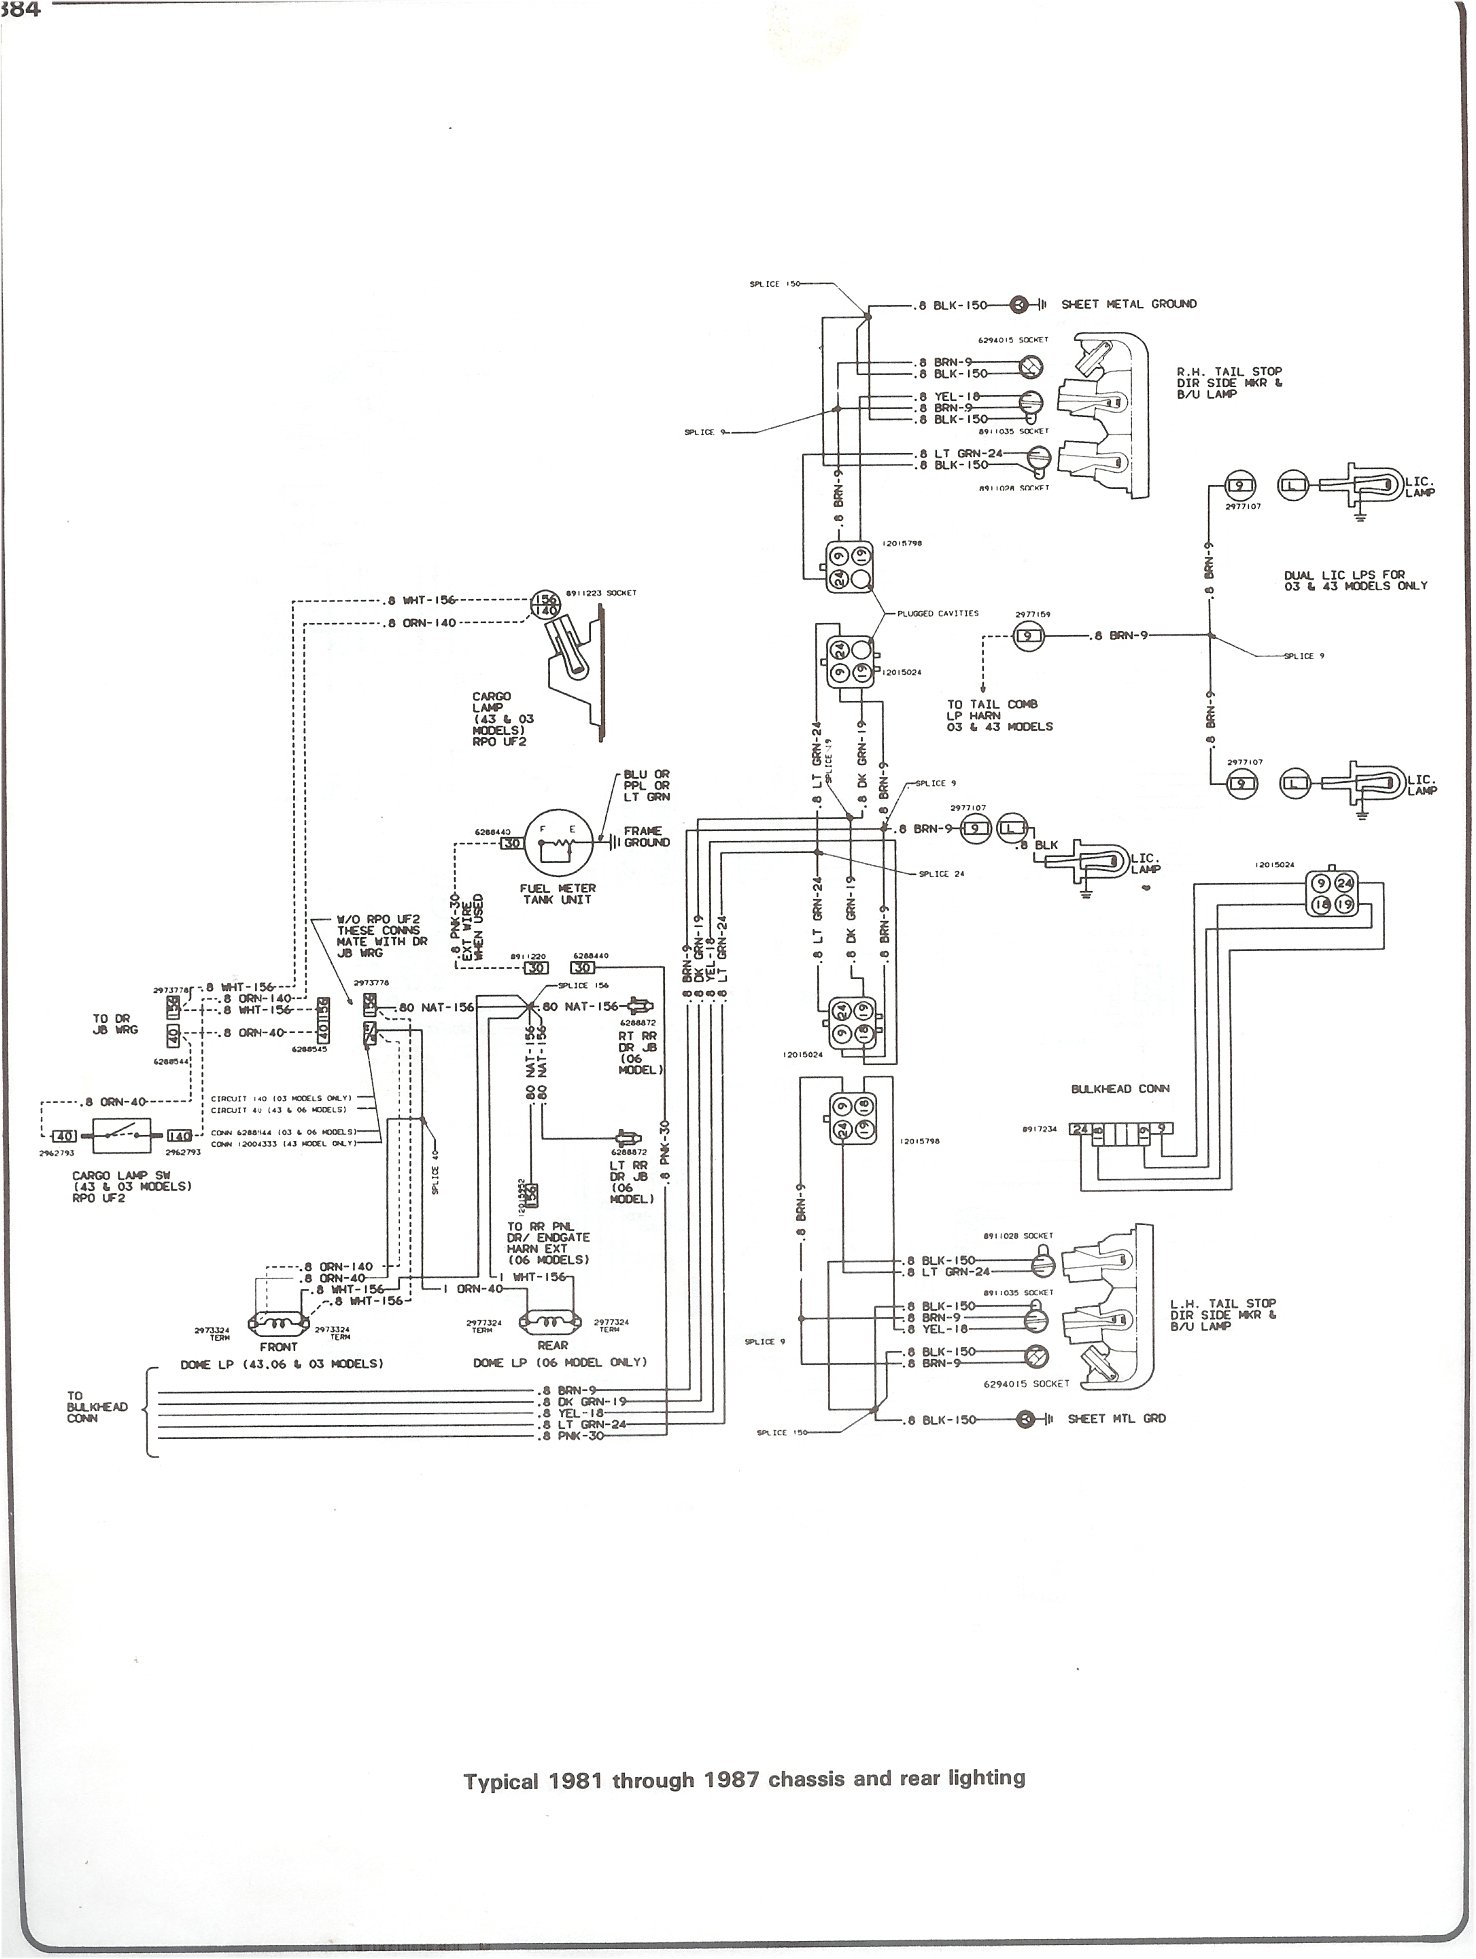 complete 73 87 wiring diagrams rh forum 73 87chevytrucks com 81 chevy truck wiring diagram 1981 chevrolet truck wiring diagram